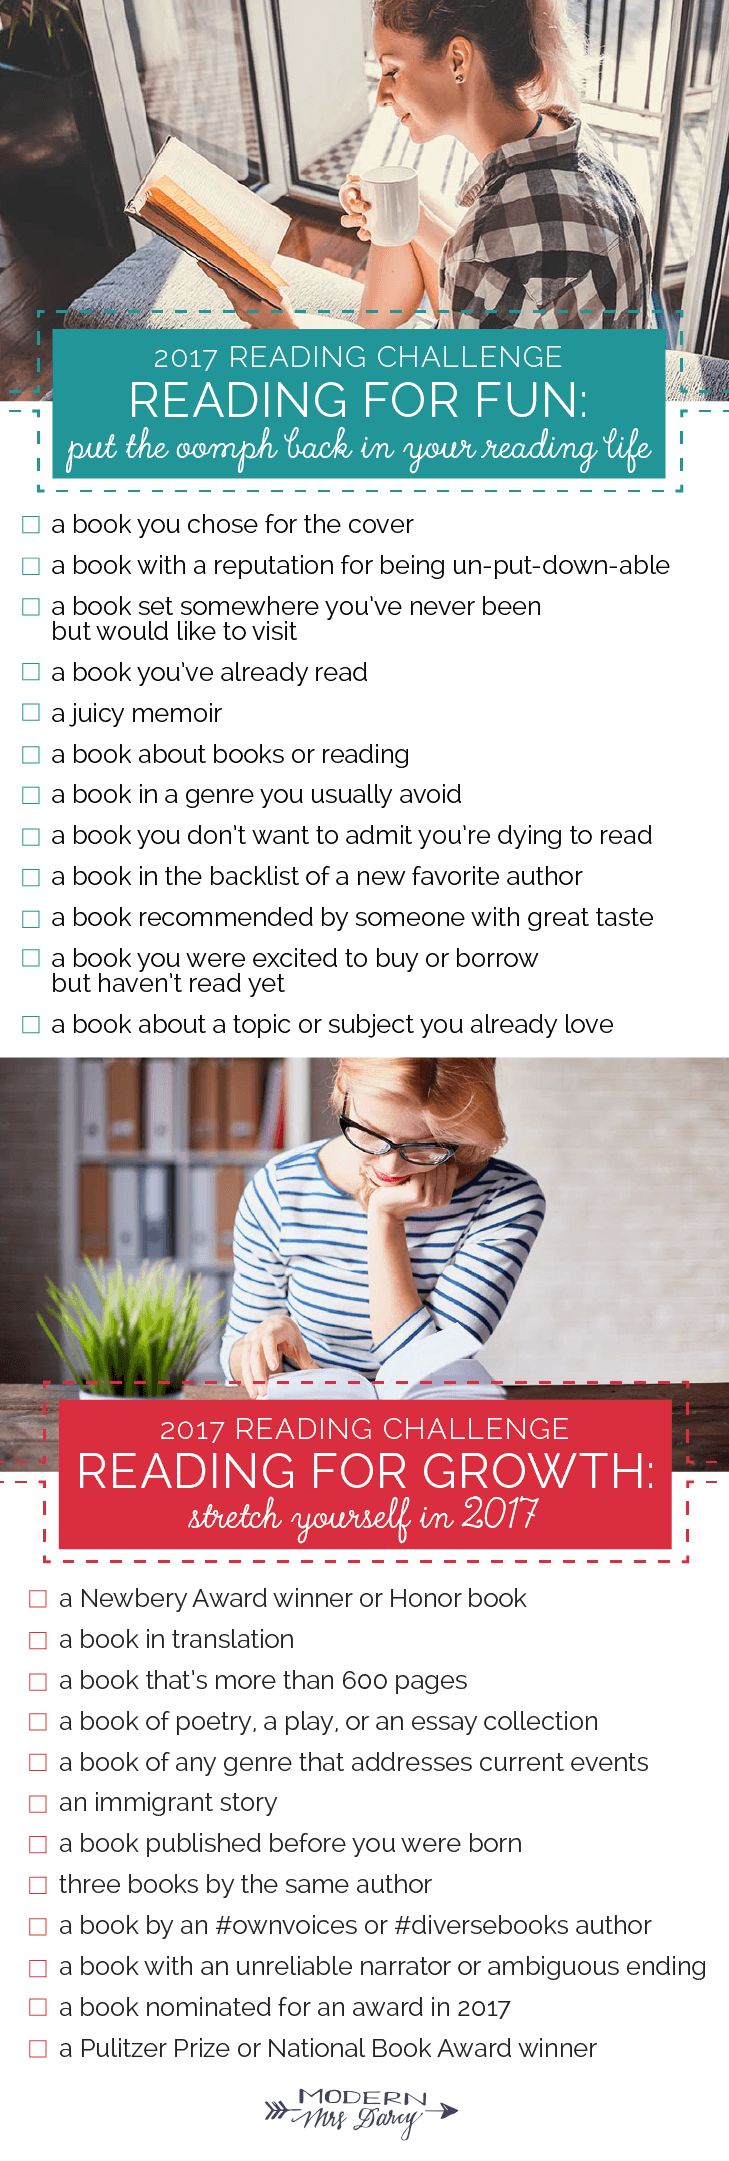 Do you want more fun in your reading life? Or do you want to read more deeply? Either way, we have a plan for you! Click through to download the printables to help you plan your reading!